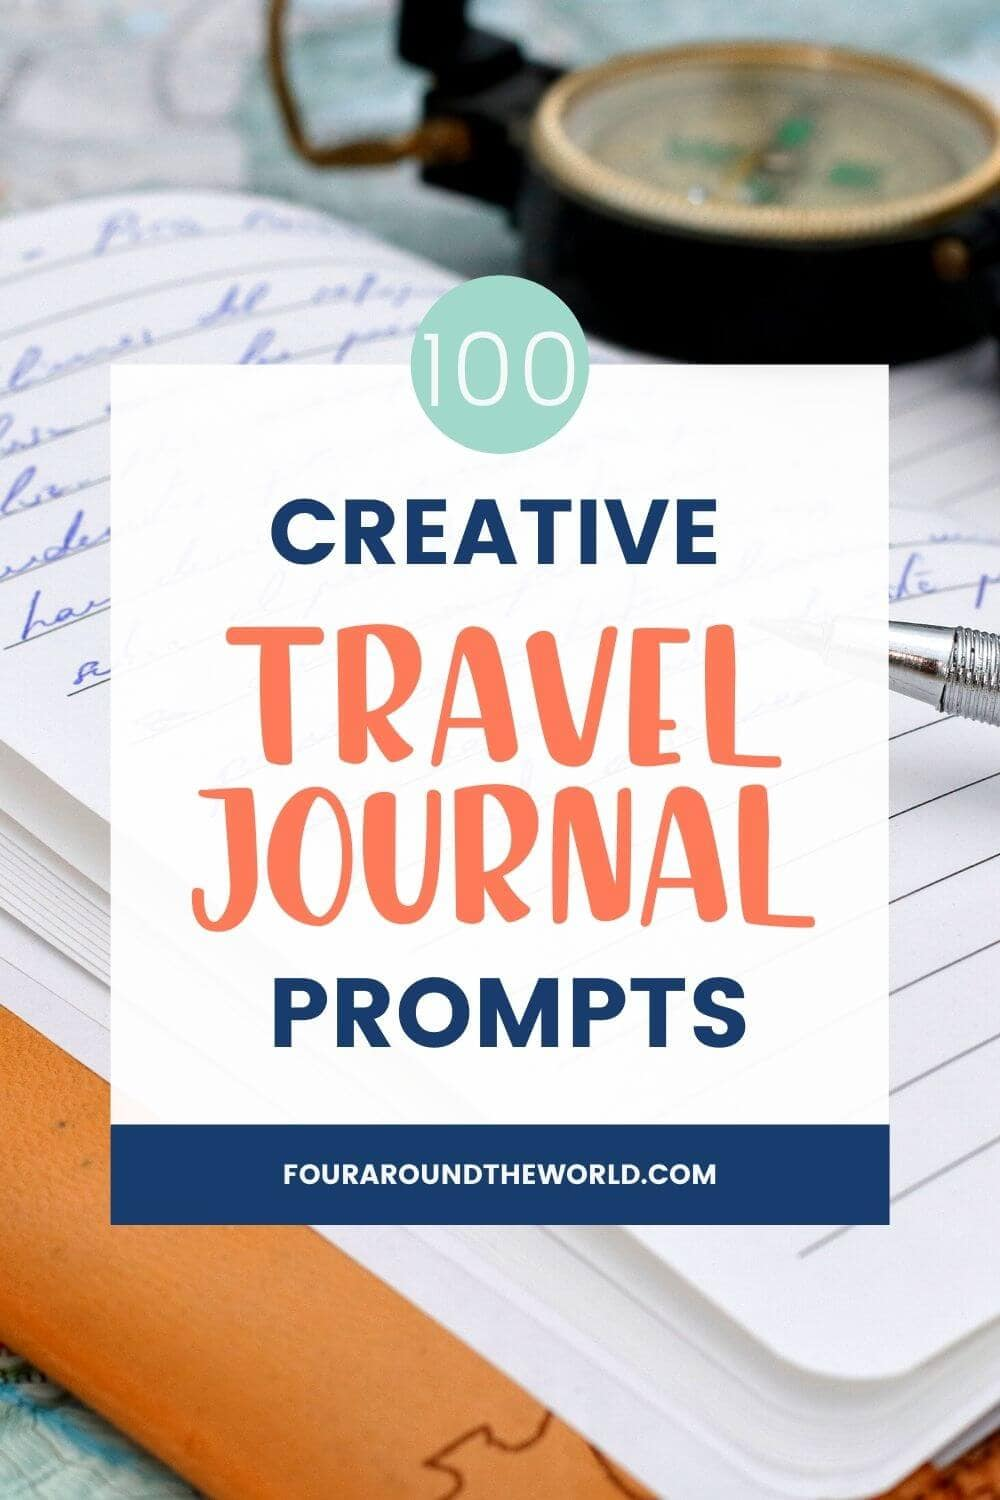 Creative travel journal prompts: Ideas To Help You Document Your Travel Memories